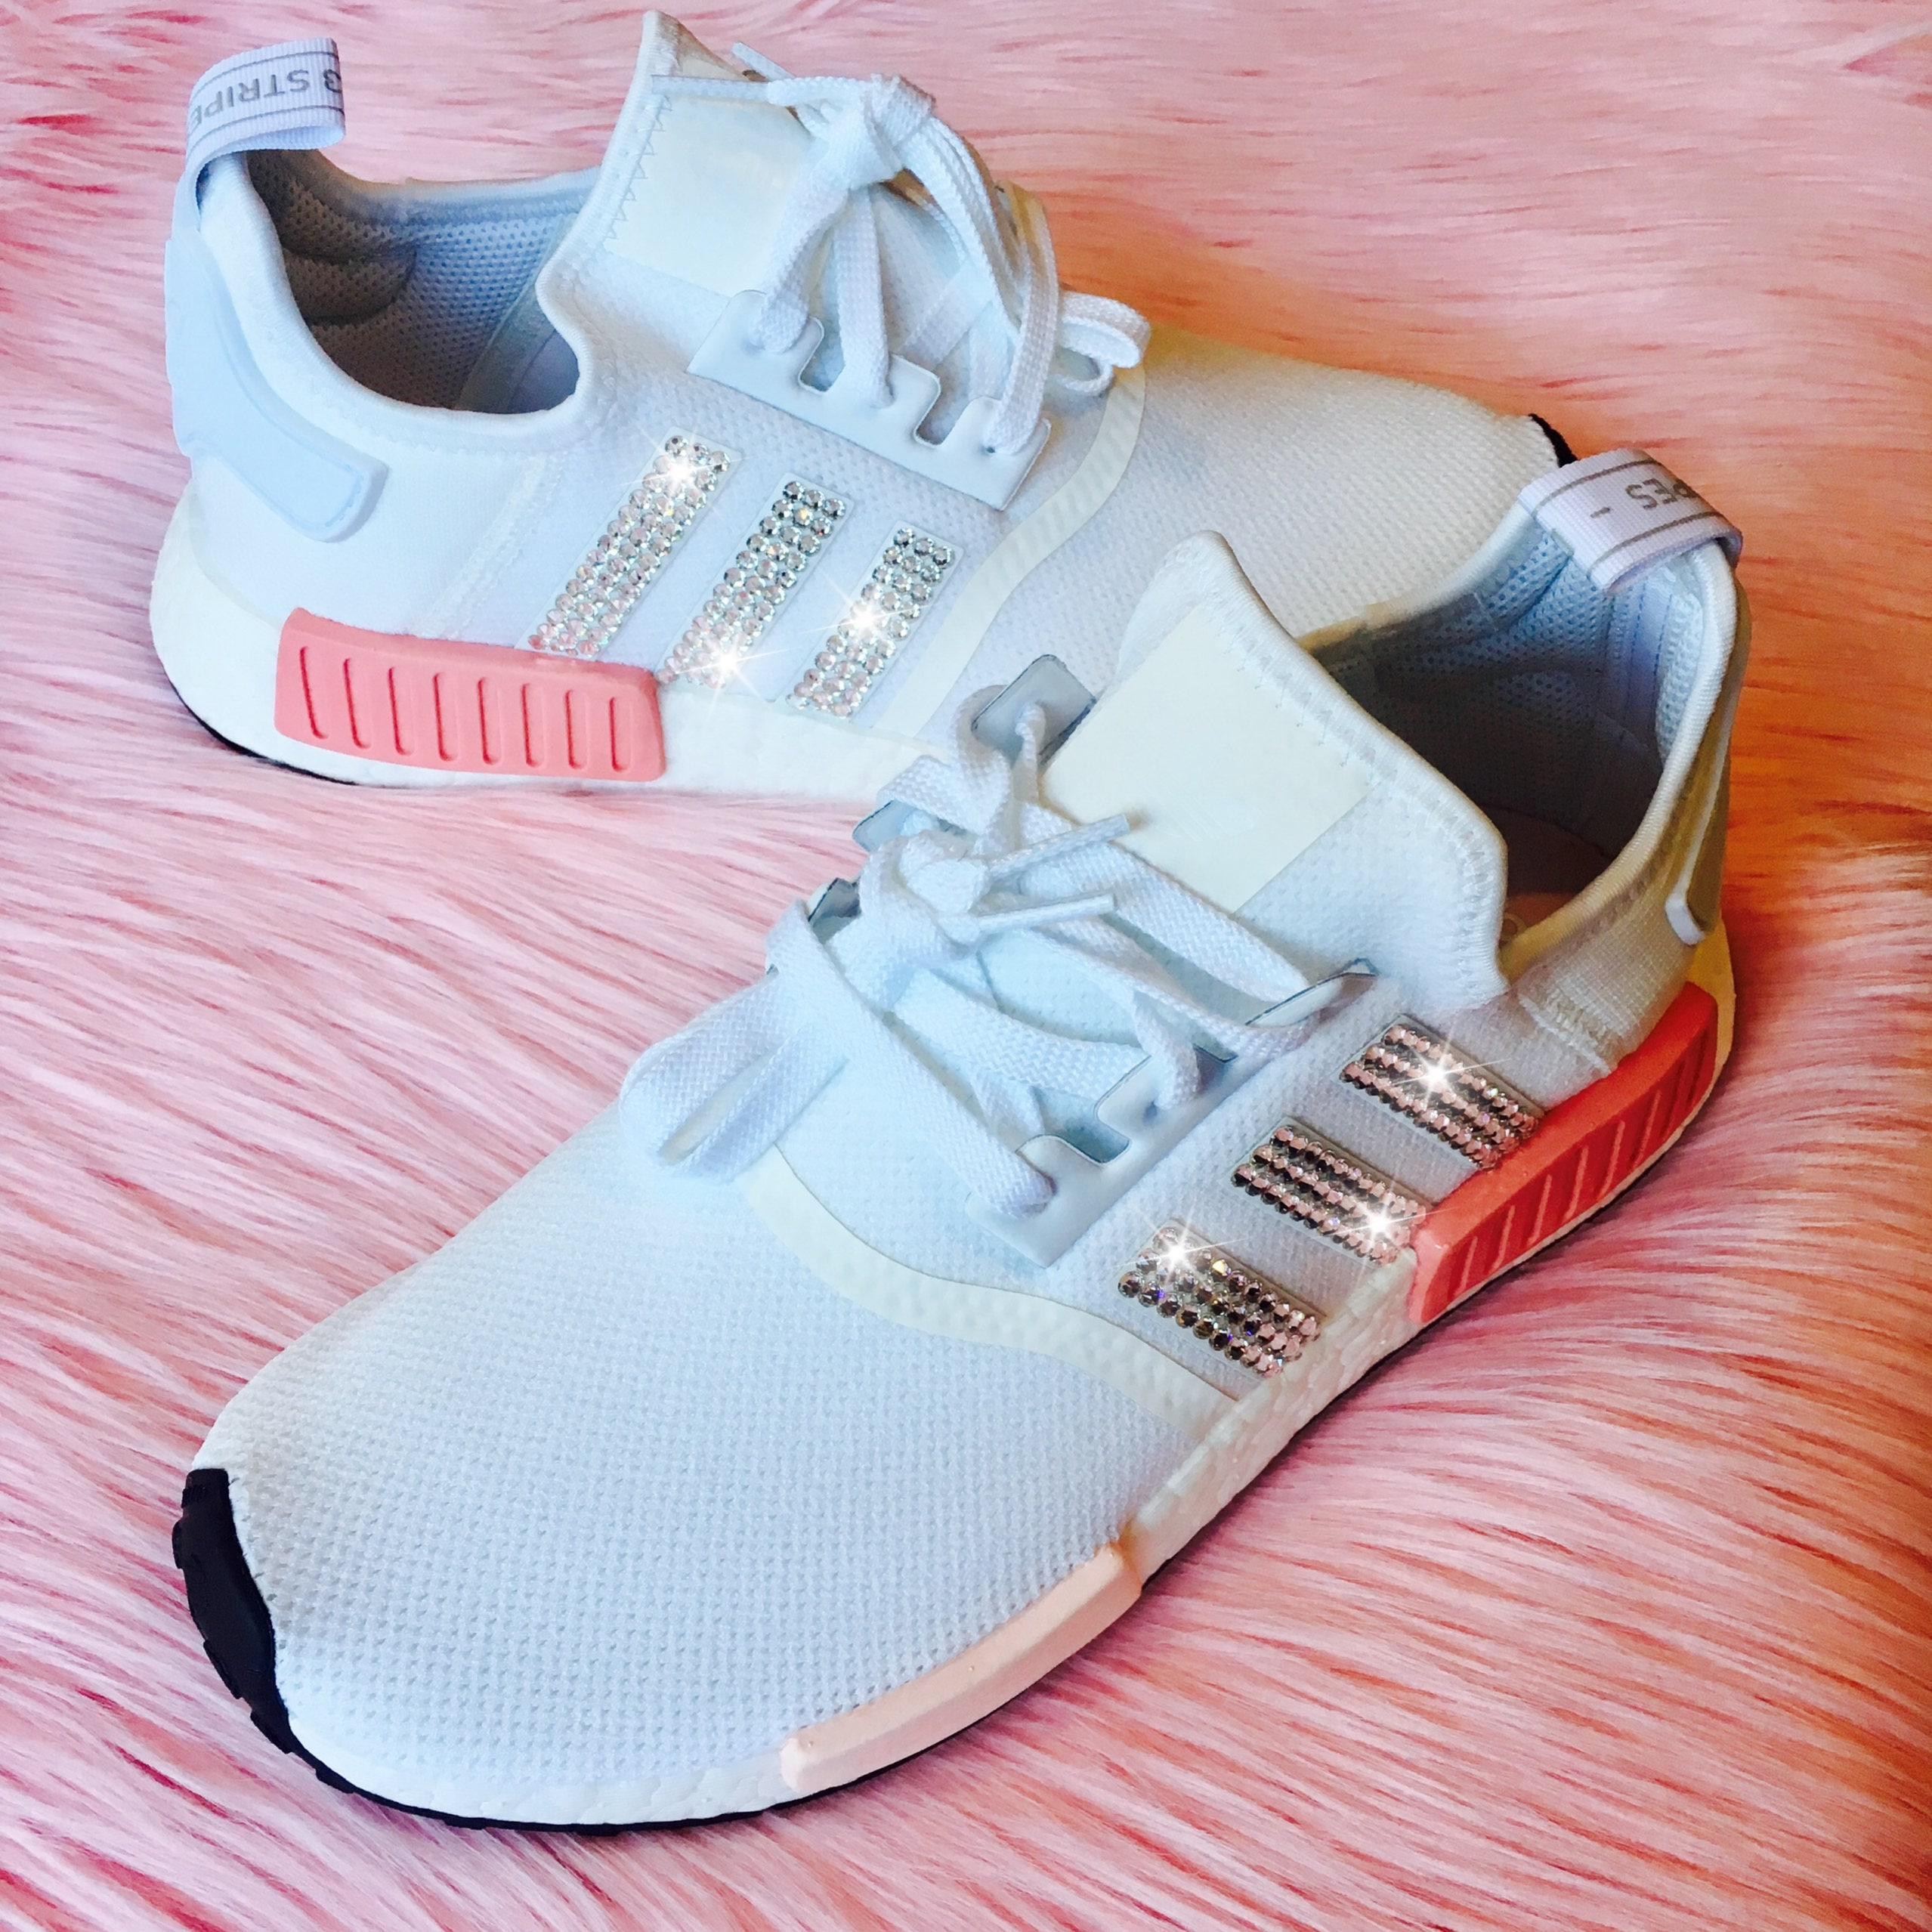 RESTOCKED Bling Adidas NMD with Swarovski Crystals White    d1110dcfe6